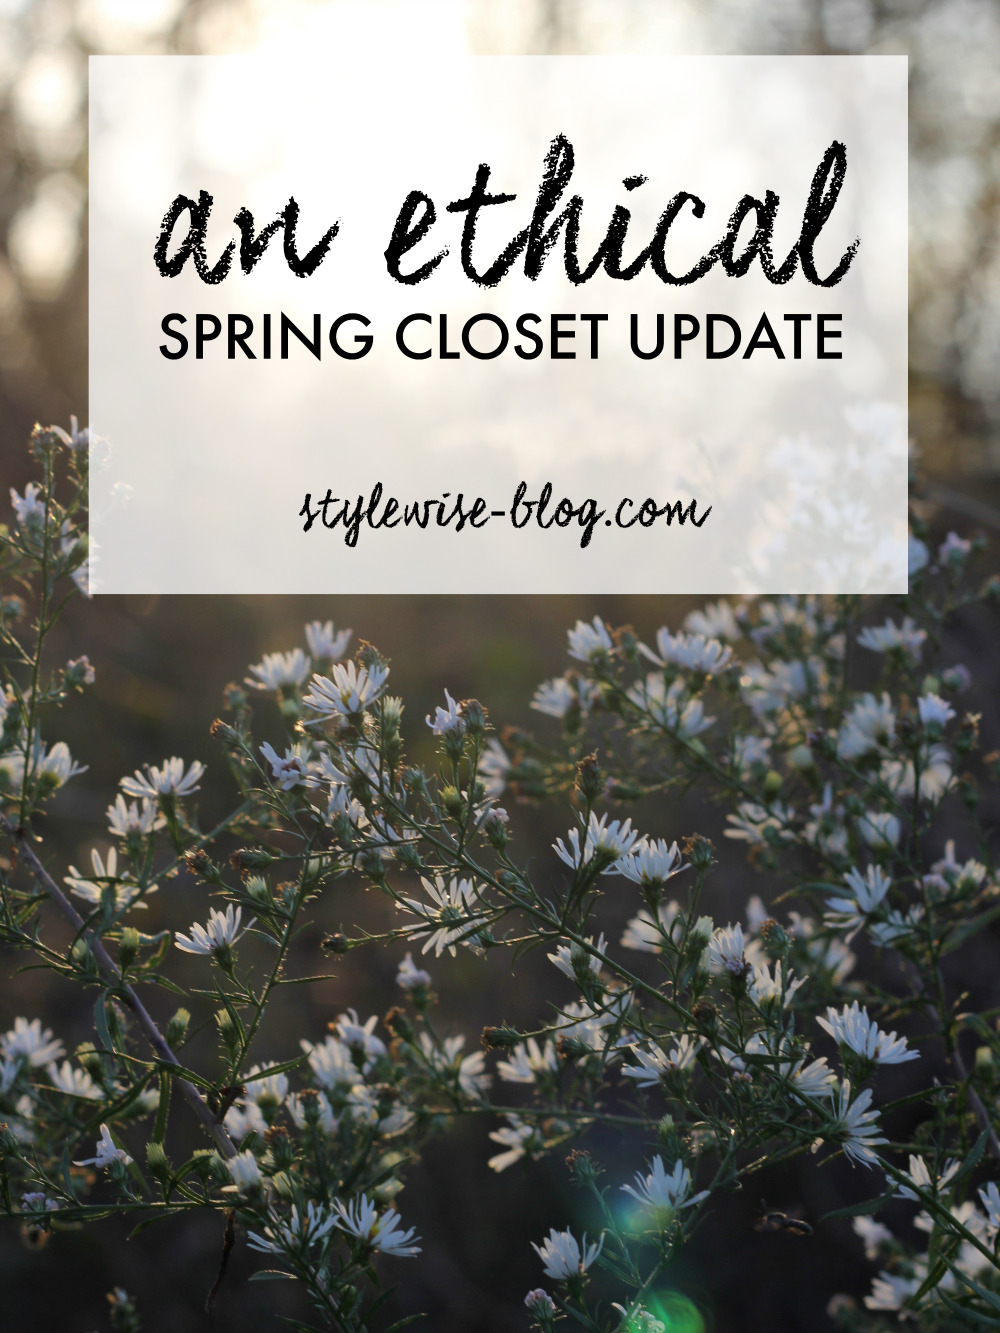 ethical and capsule closet - spring update, stylewise-blog.com